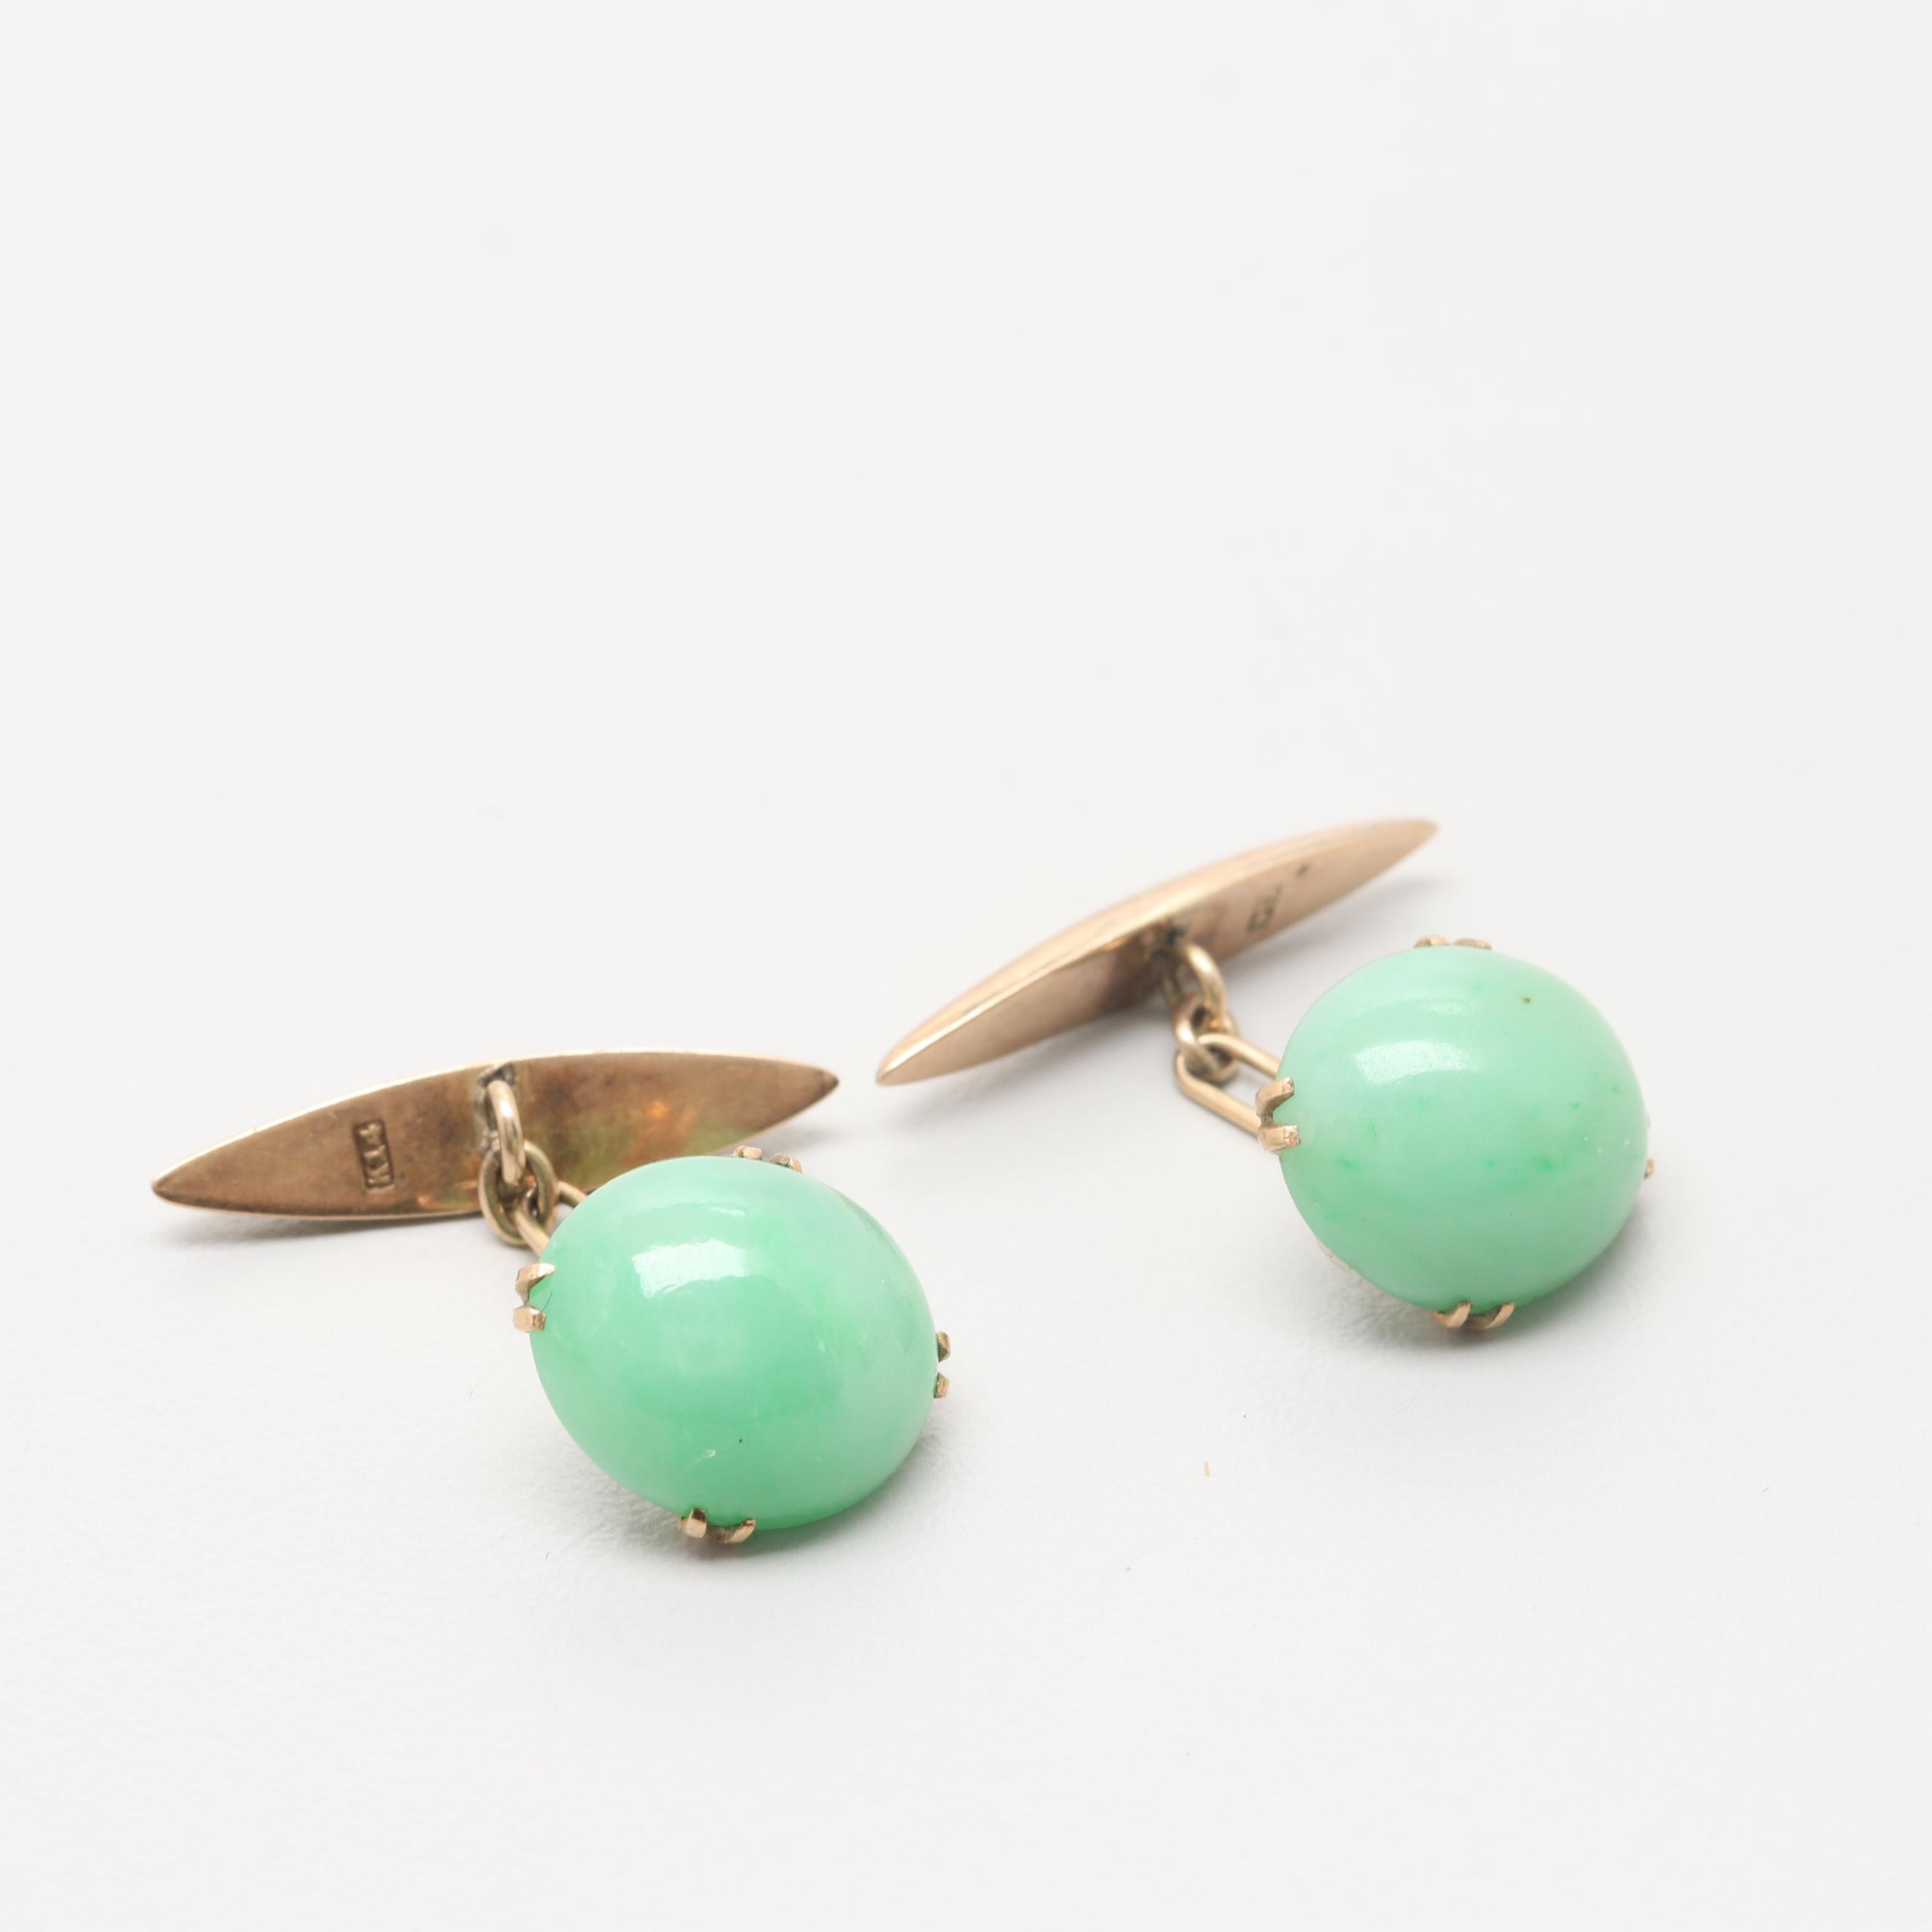 14K Yellow Gold Jadeite Cufflinks